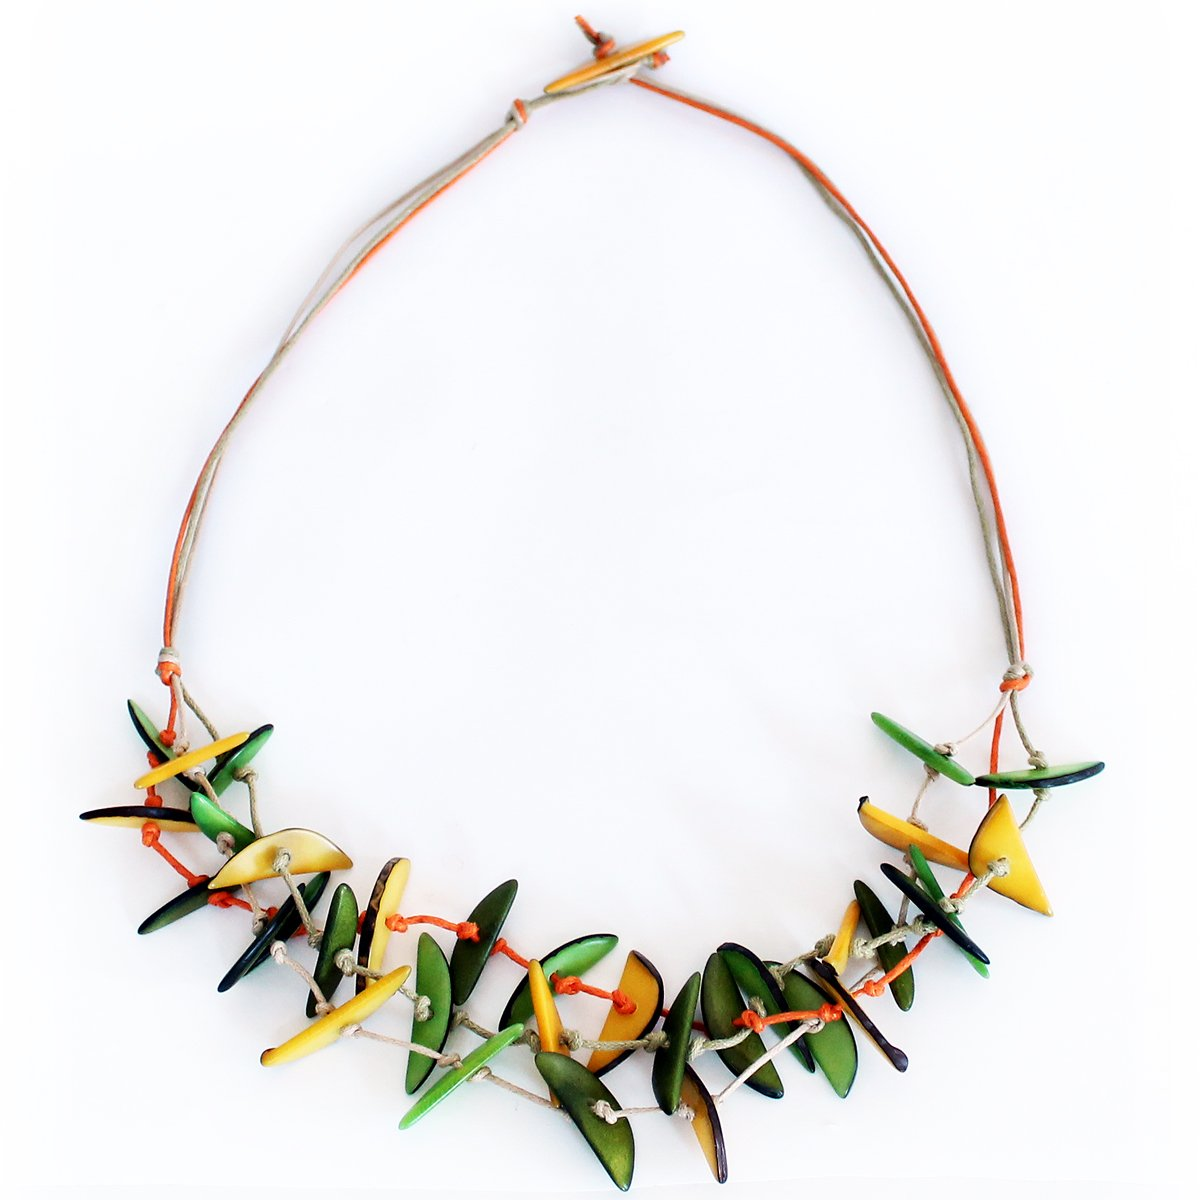 Slivers Tagua Necklace Yellow and Green